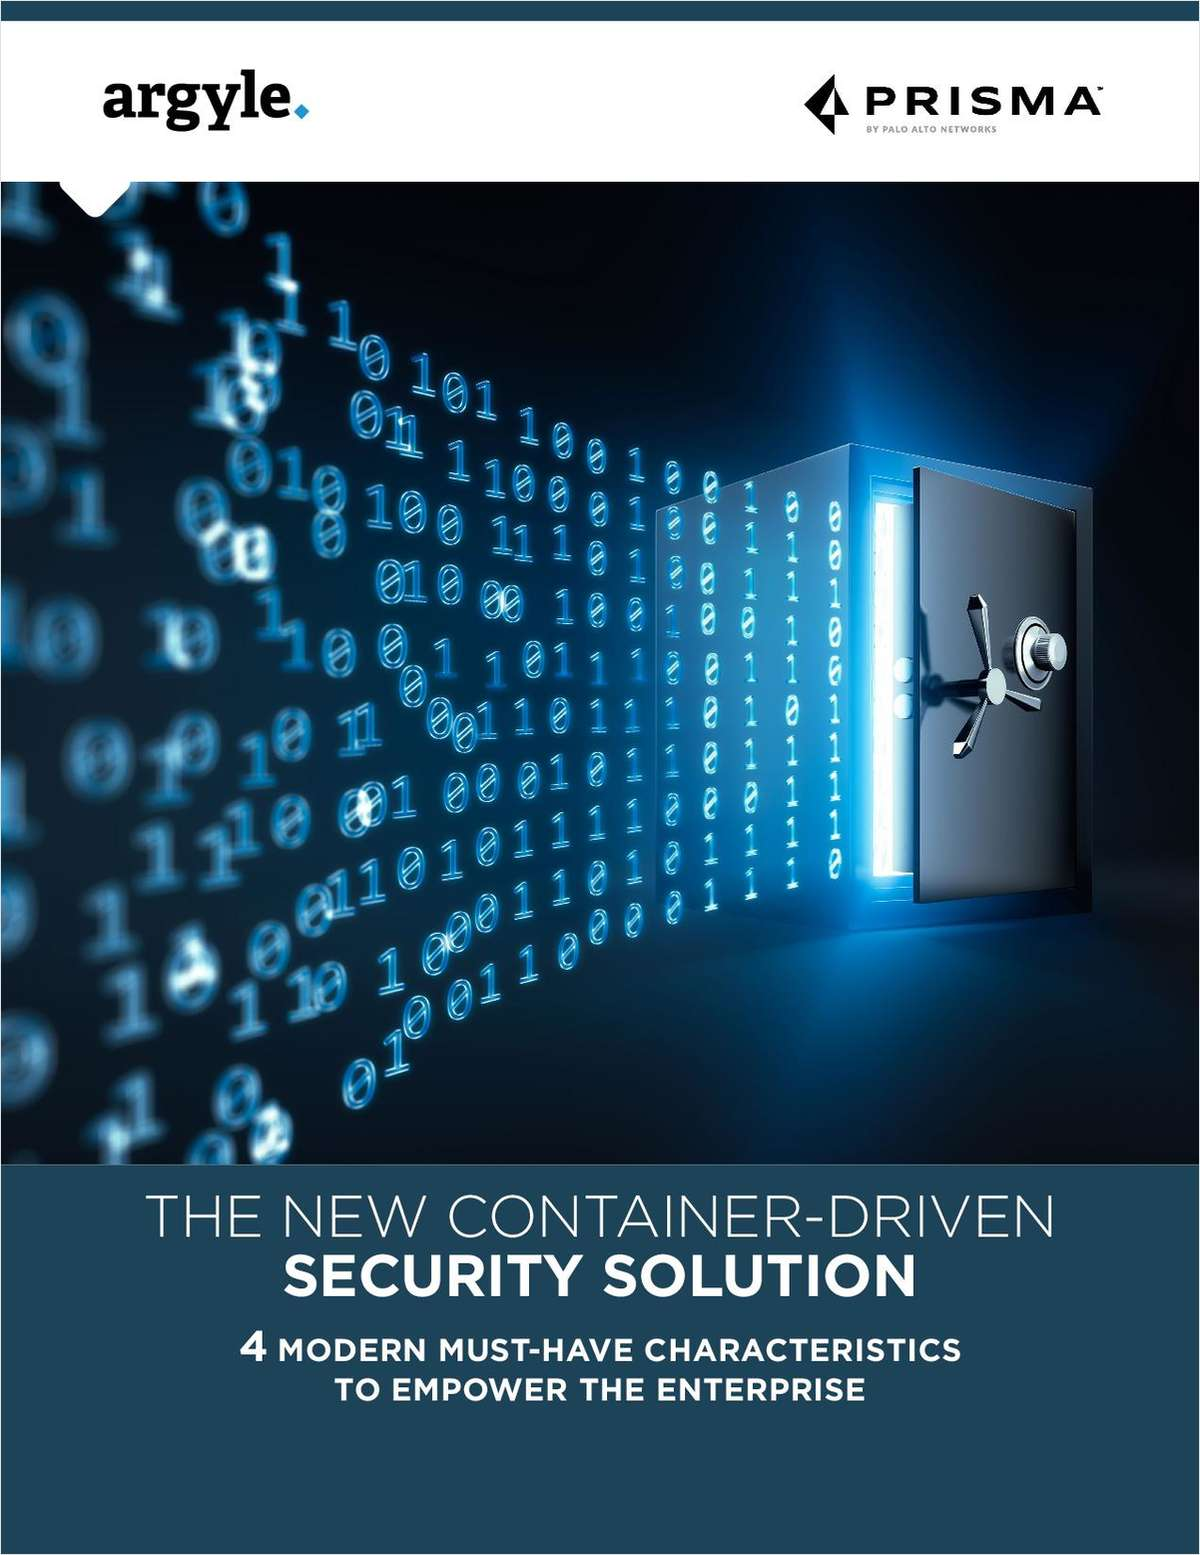 The New Container-Driven Security Solution